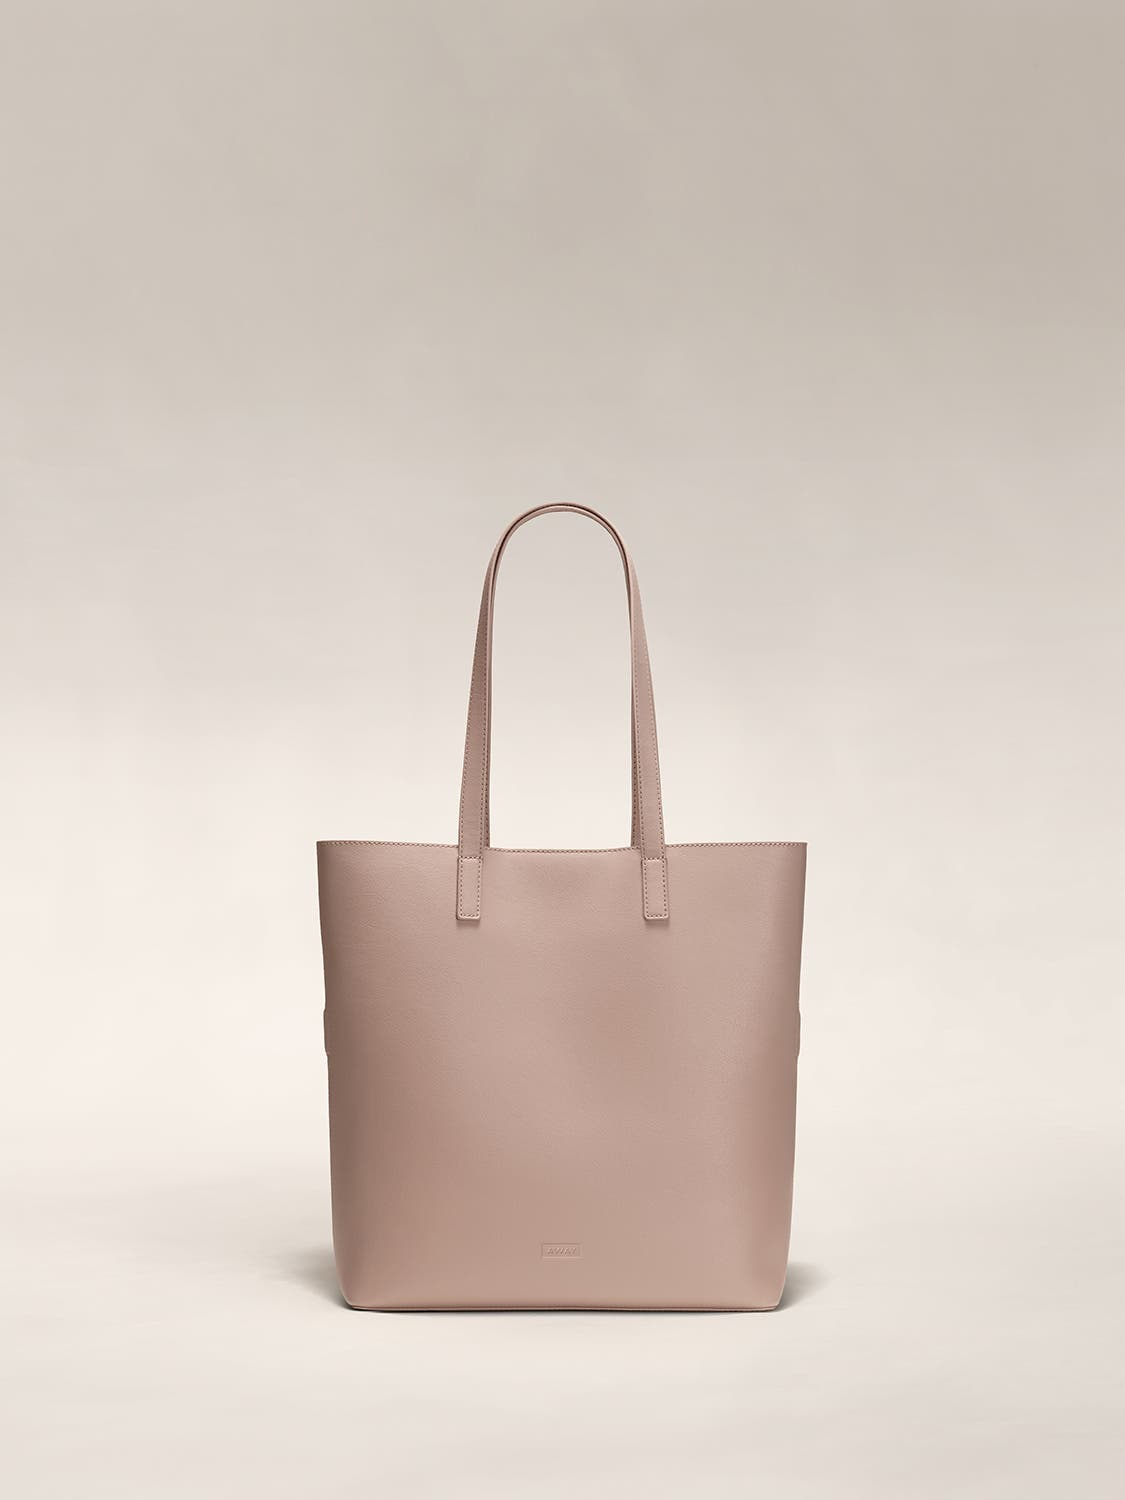 A rose pink tote shoulder bag in leather.